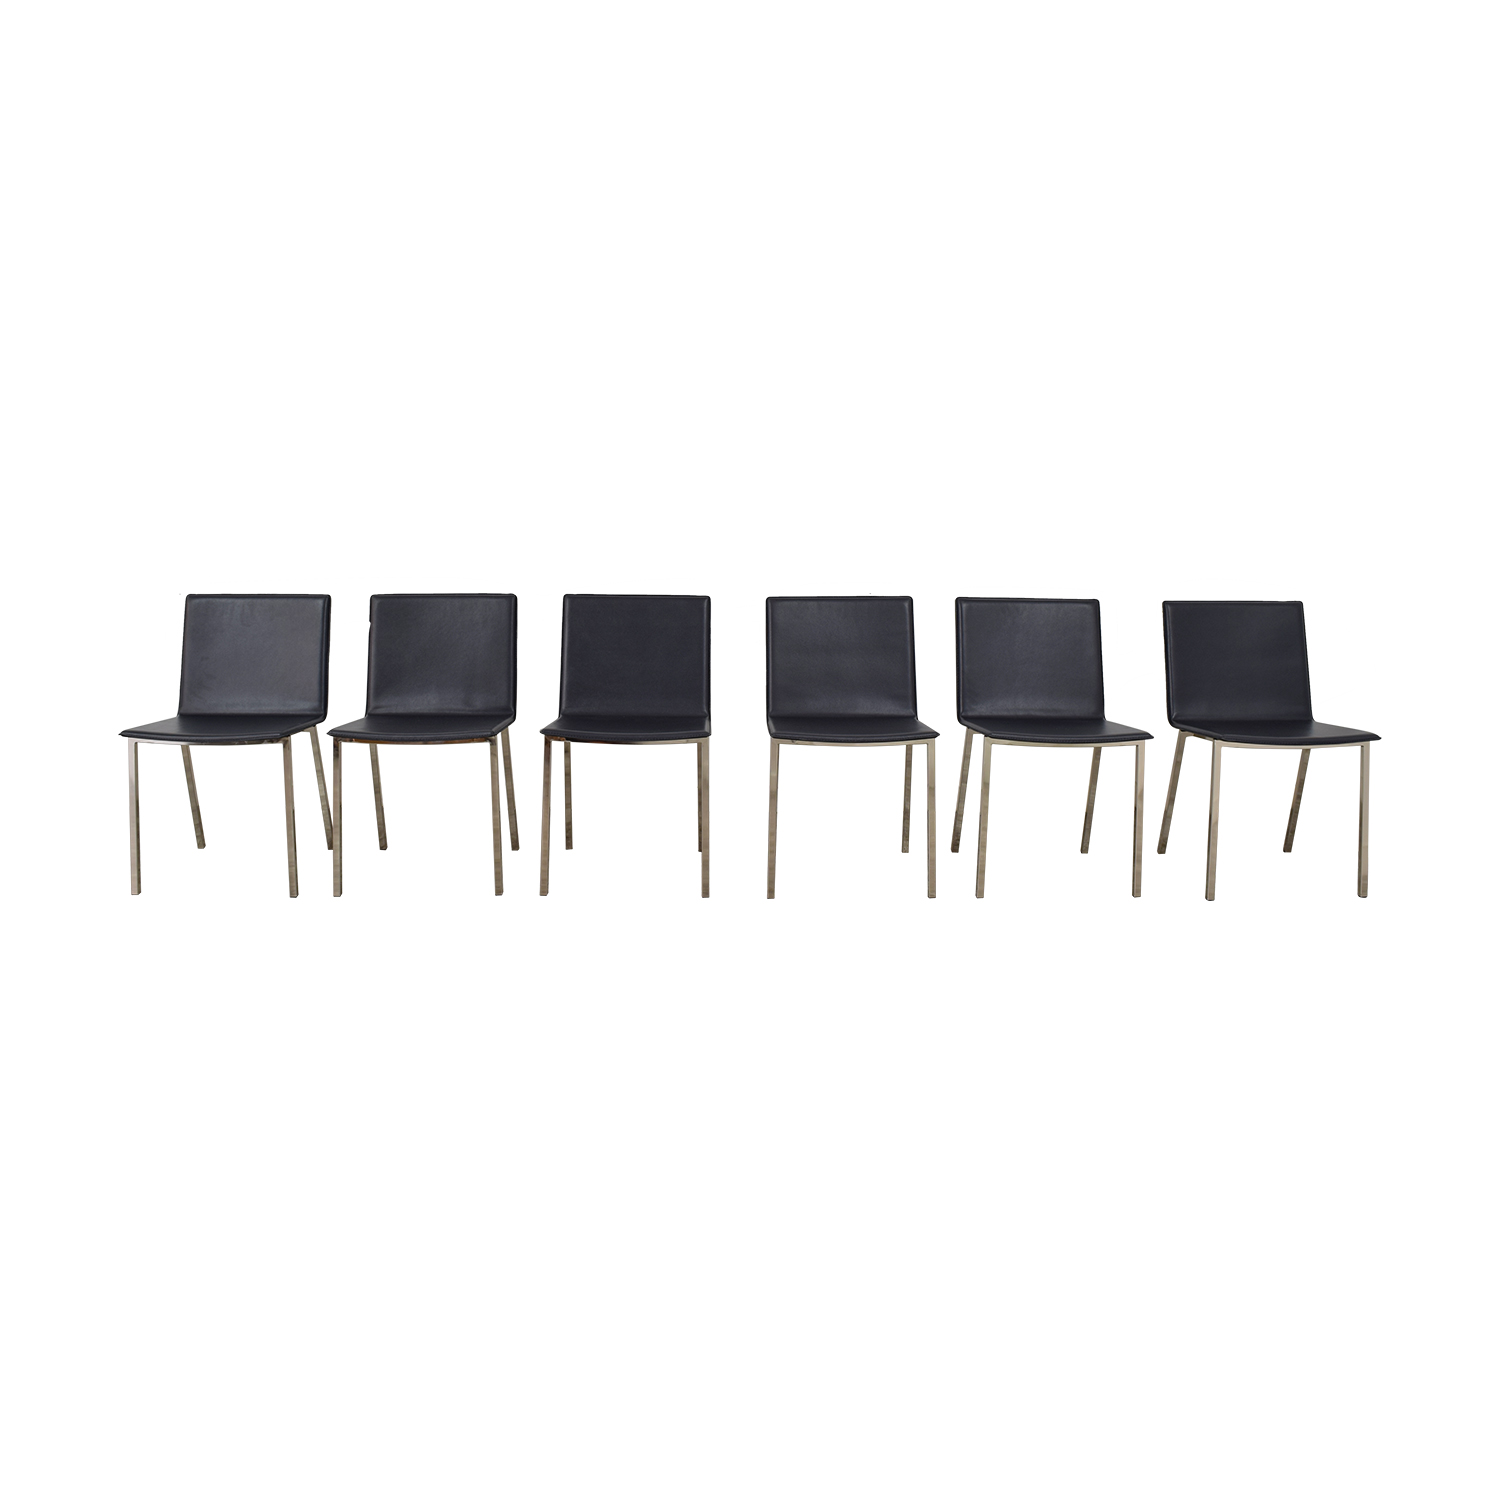 CB2 Phoenix Carbon Grey Chairs sale